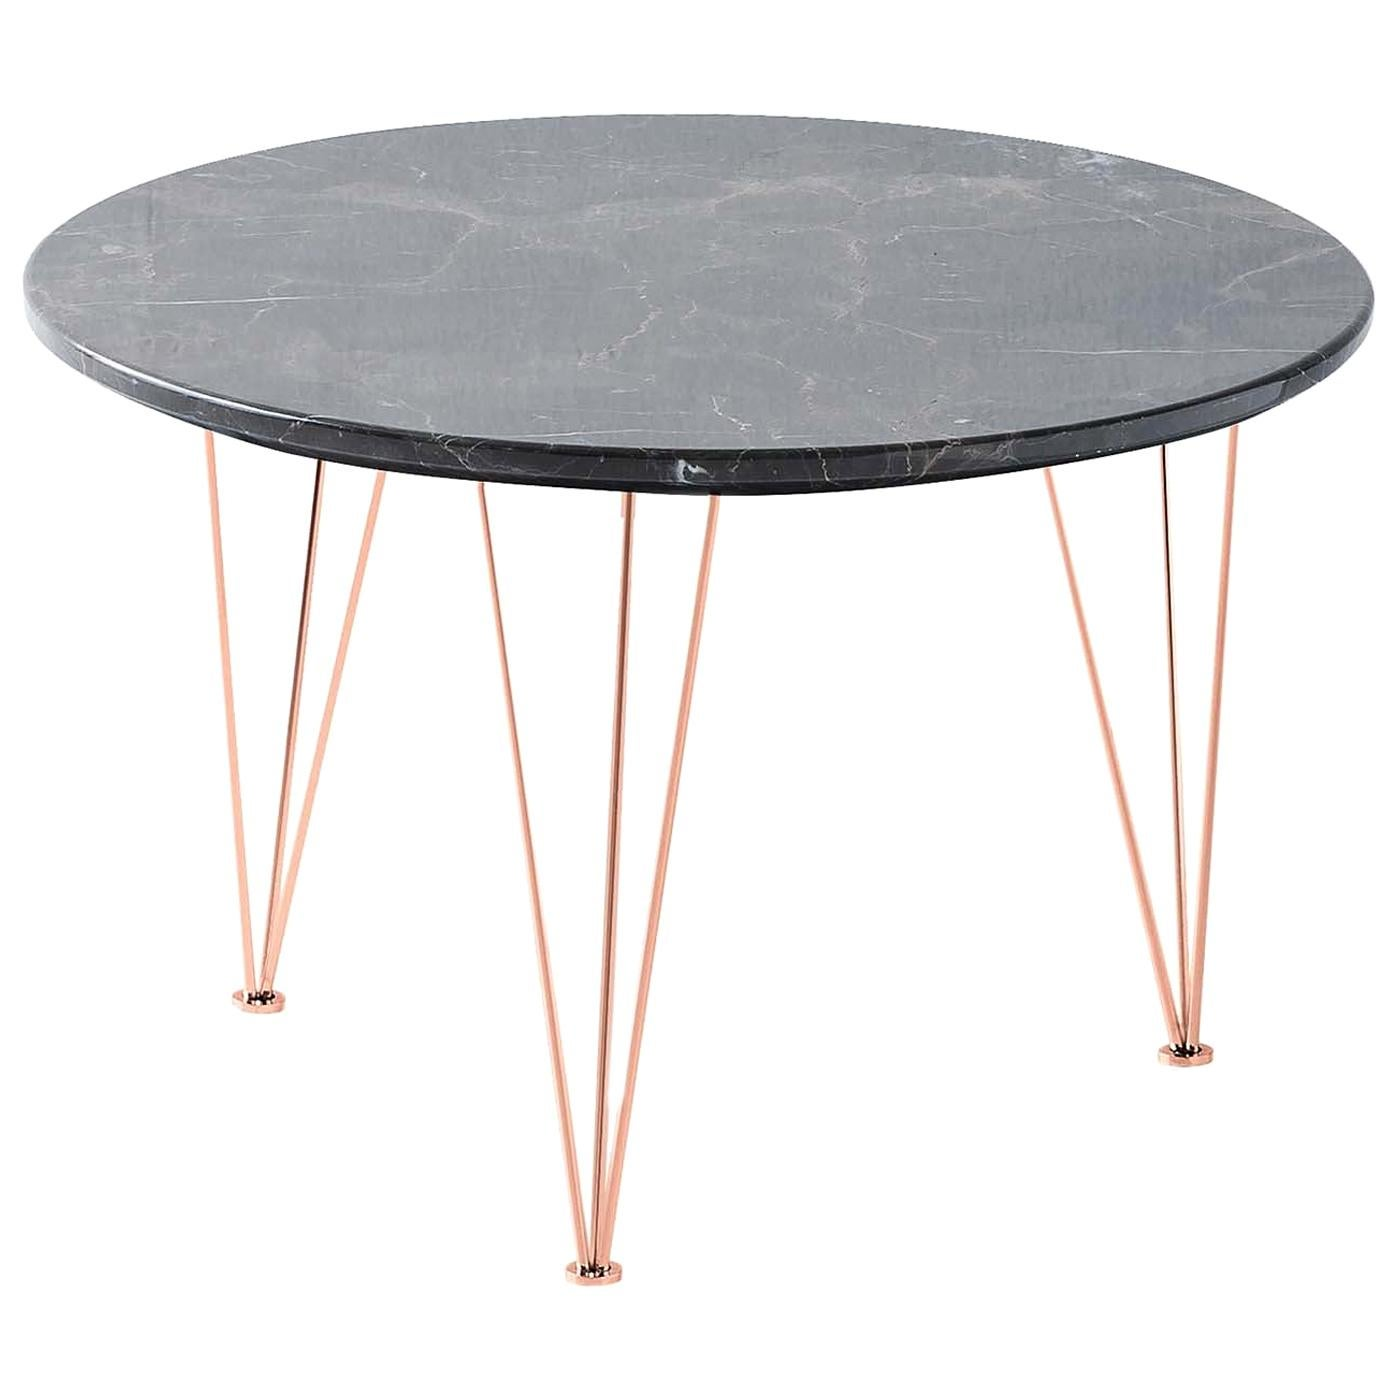 Flamingo Low Round Side Table with Copper Legs